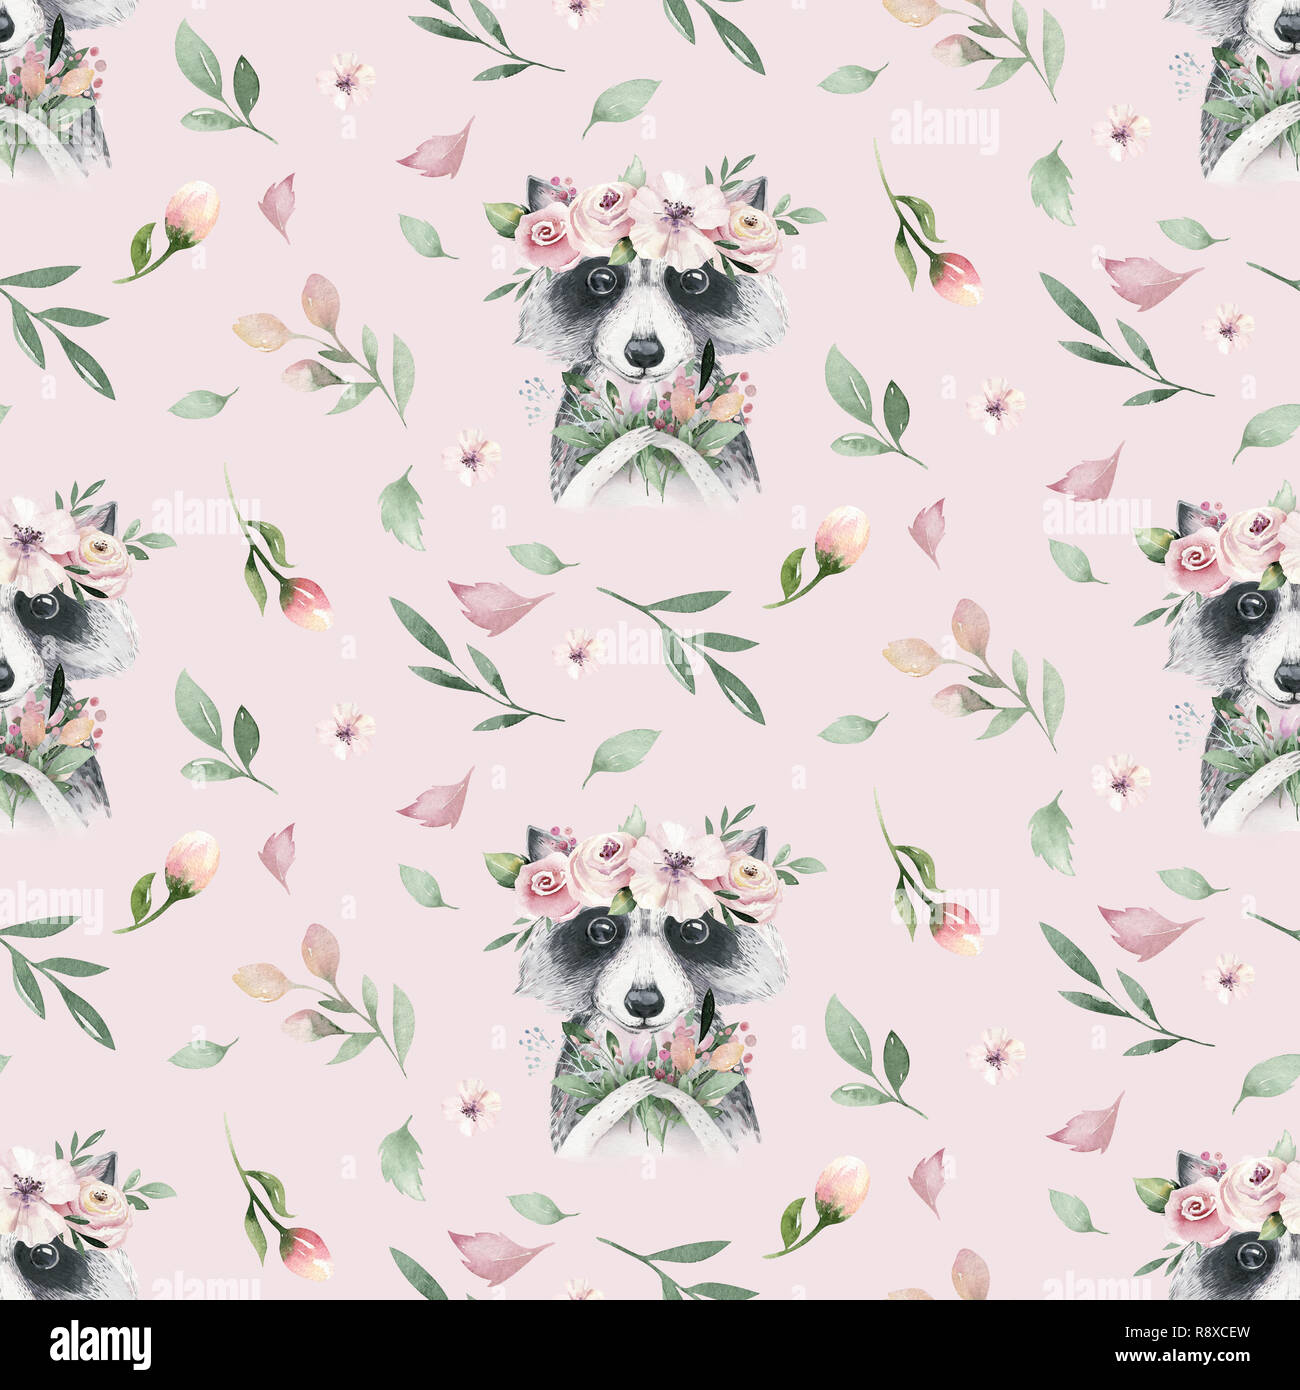 Watercolor Seamless Hand Illustrated Floral Pattern With